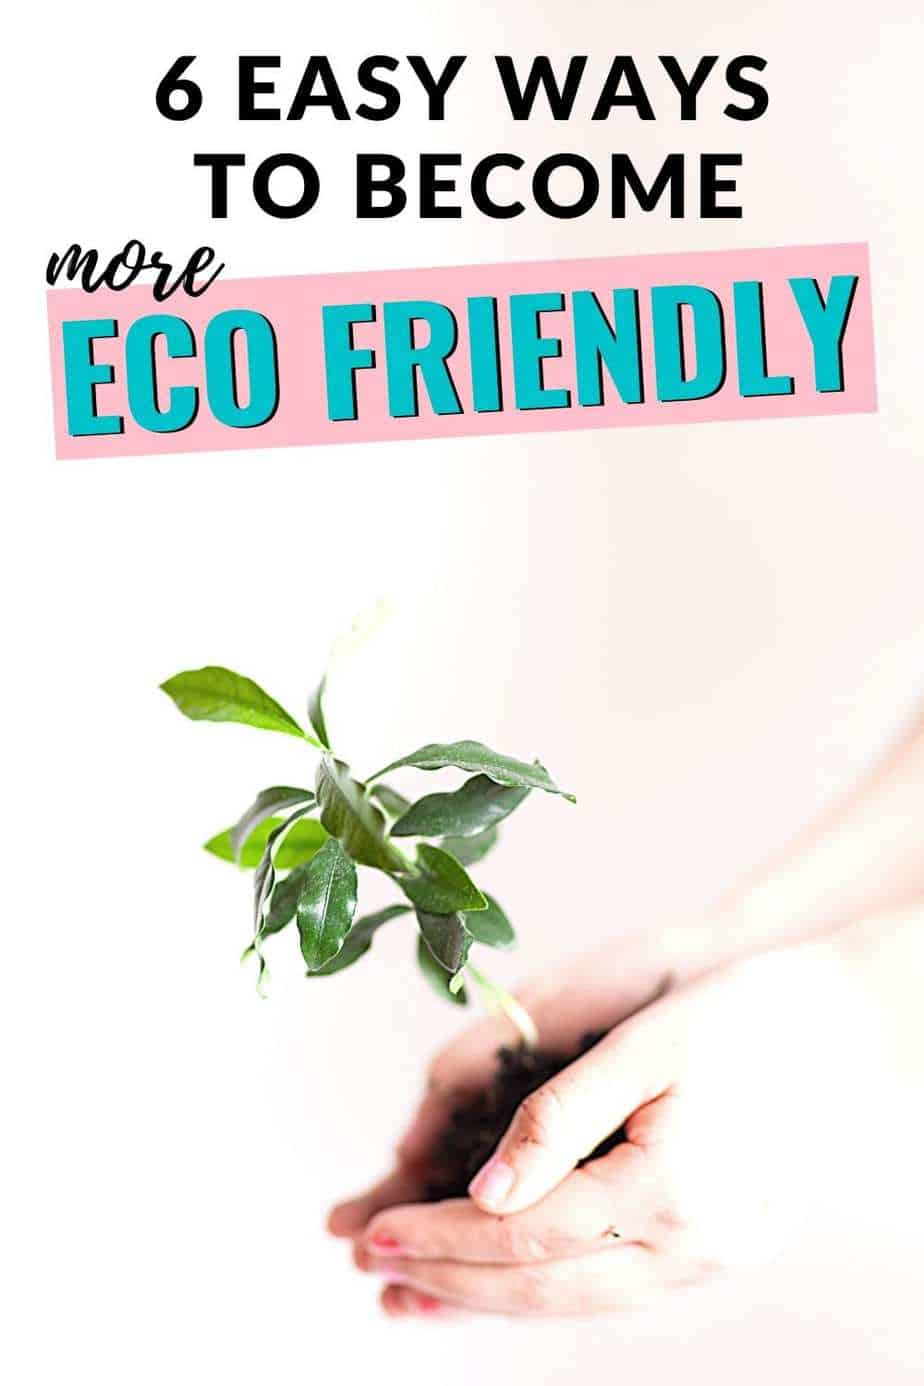 6 easy ways to become more eco friendly